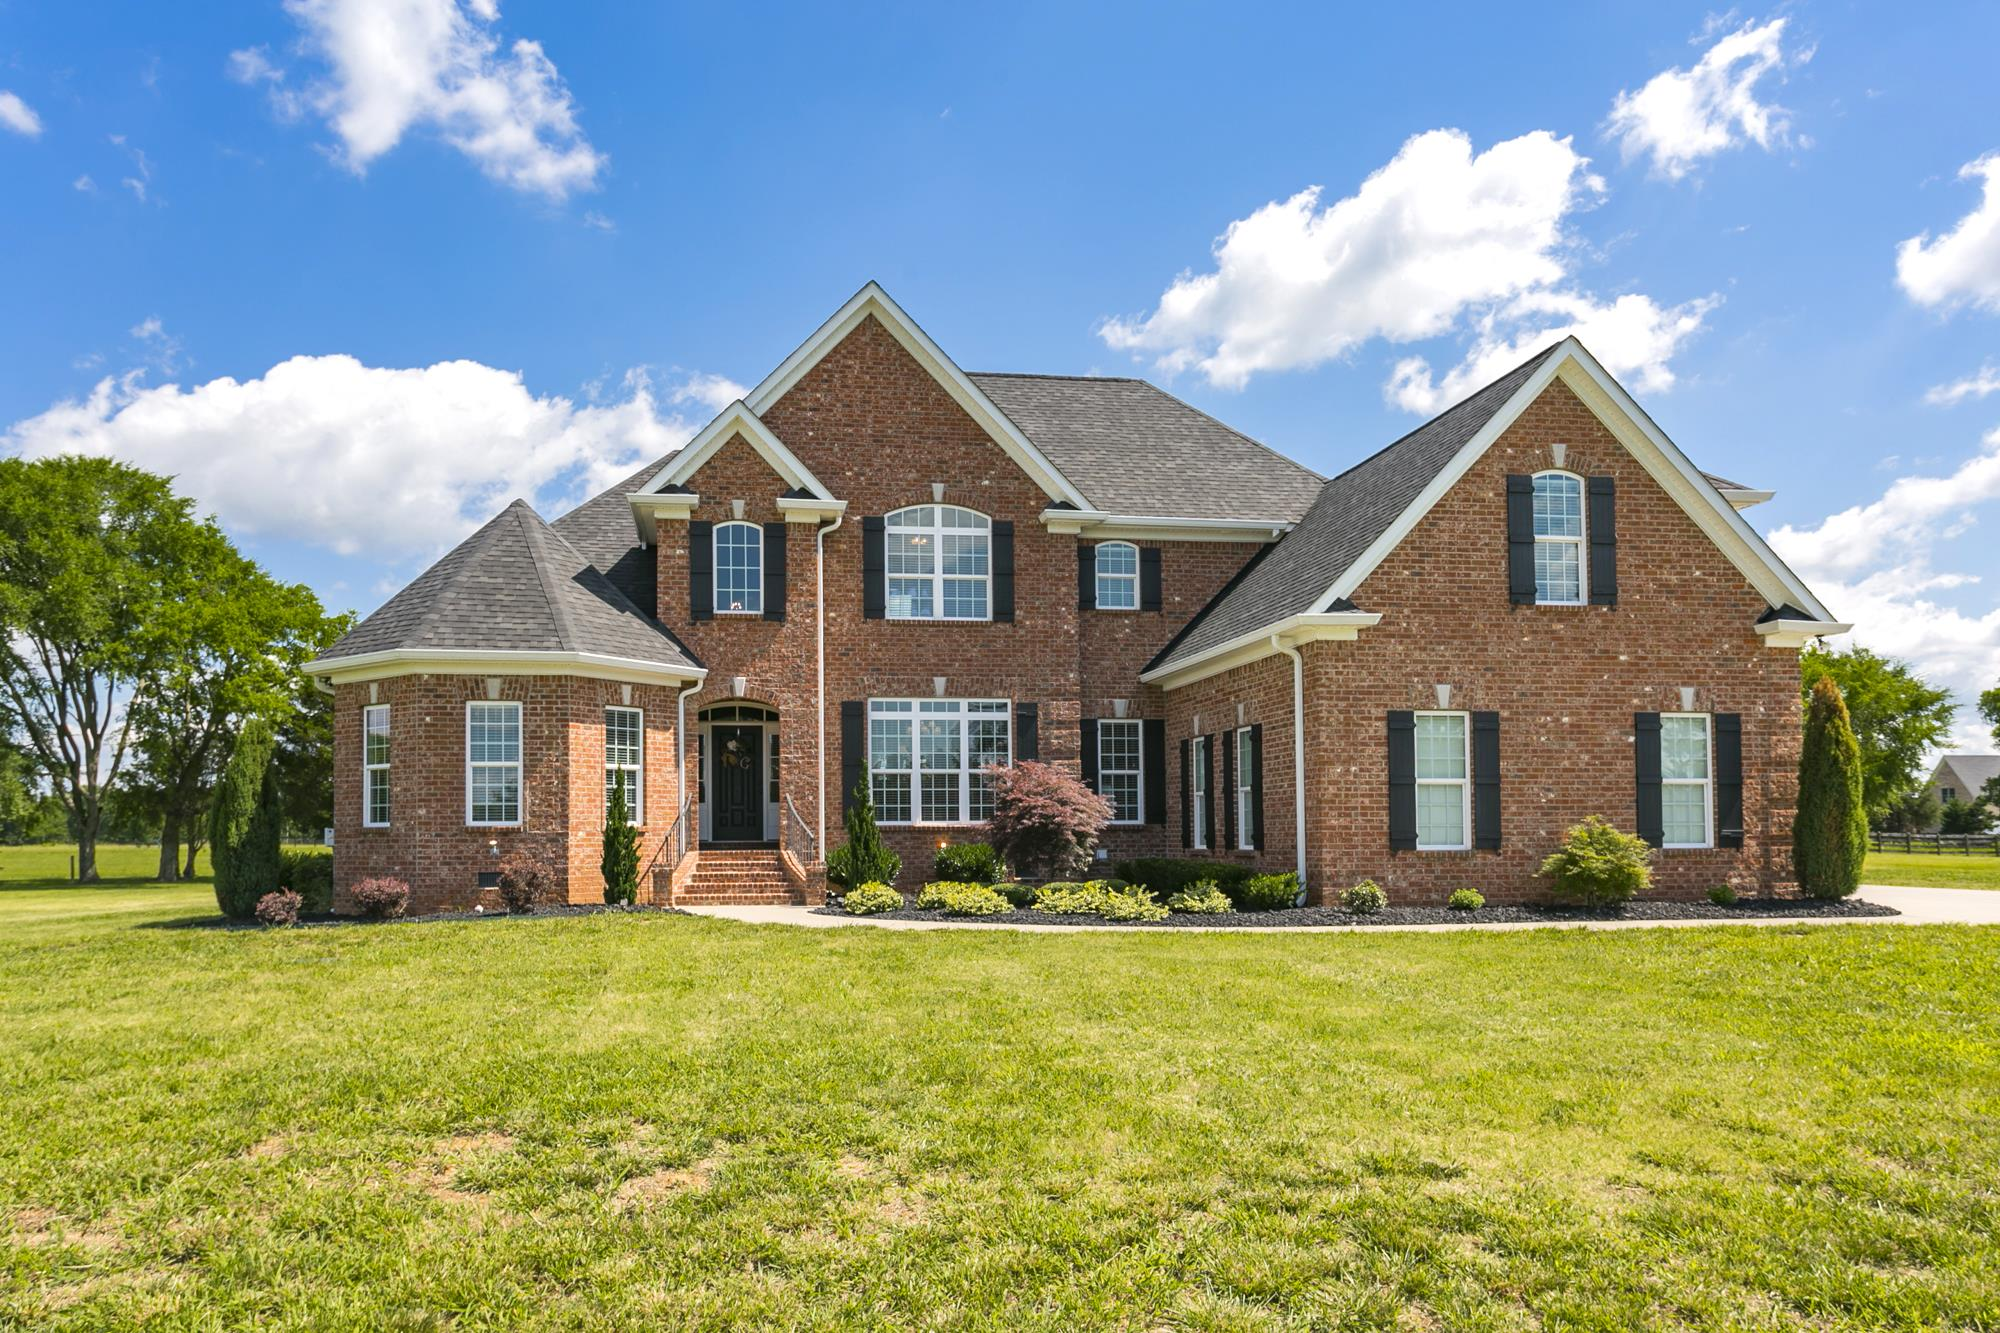 3845 Triple Crown Dr, Murfreesboro, Tennessee